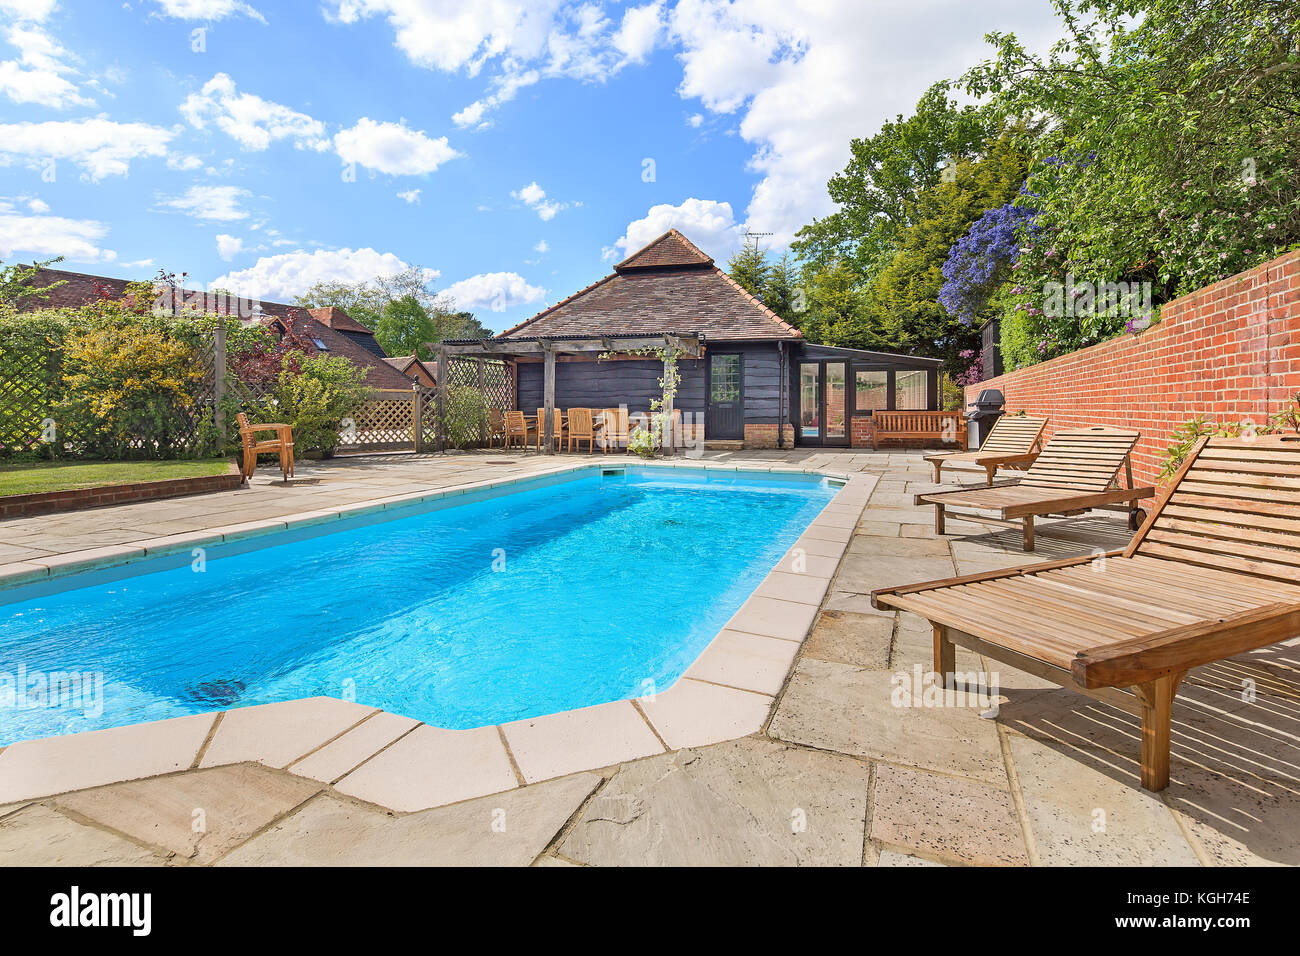 Outdoor Swimming Pool Area In Large Country Home Stock Photo Alamy